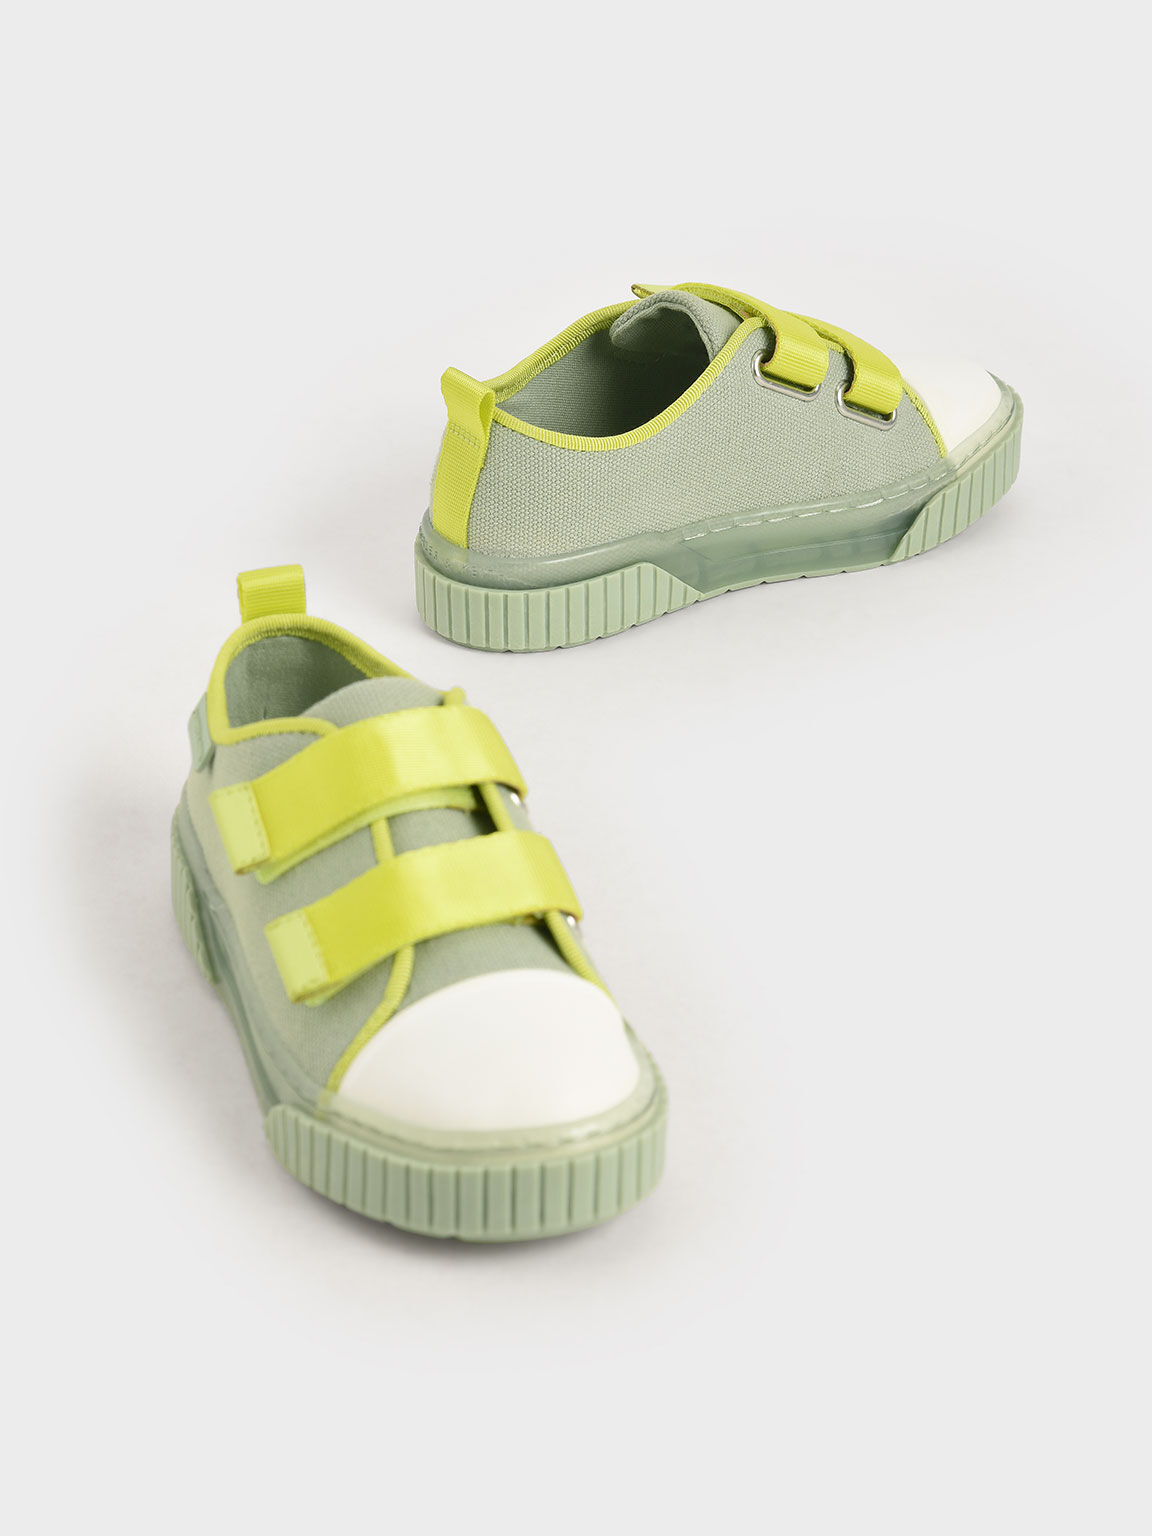 Purpose Collection 2021: Girls' Organic Cotton Sneakers, Mint Green, hi-res